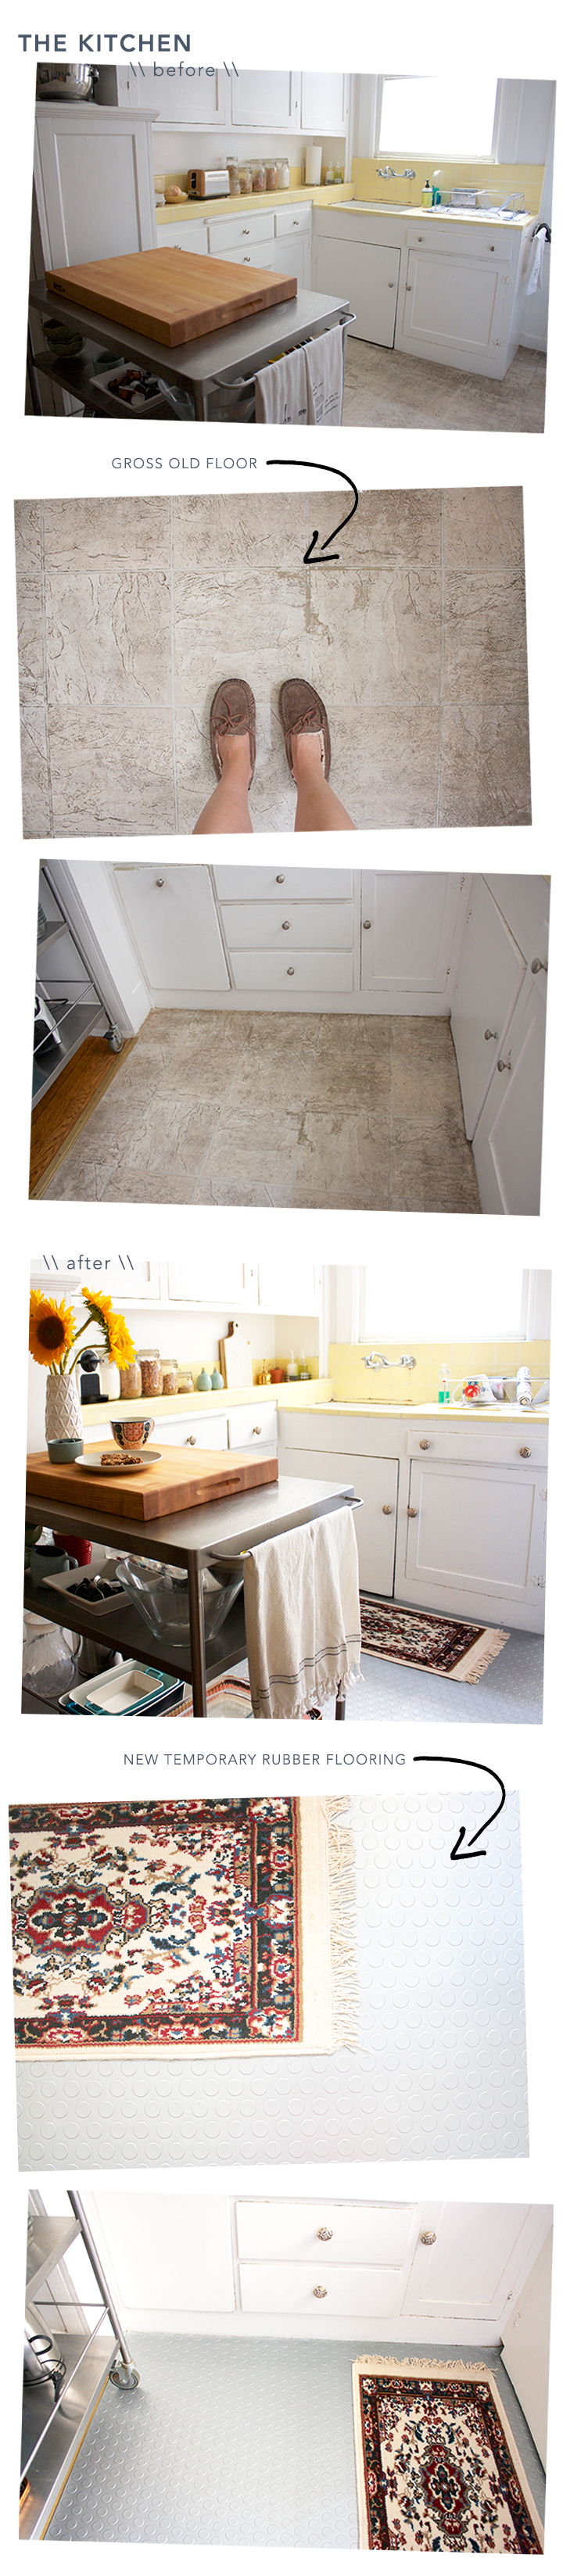 Before and After: Temporary Kitchen Floor - FlooringInc Blog